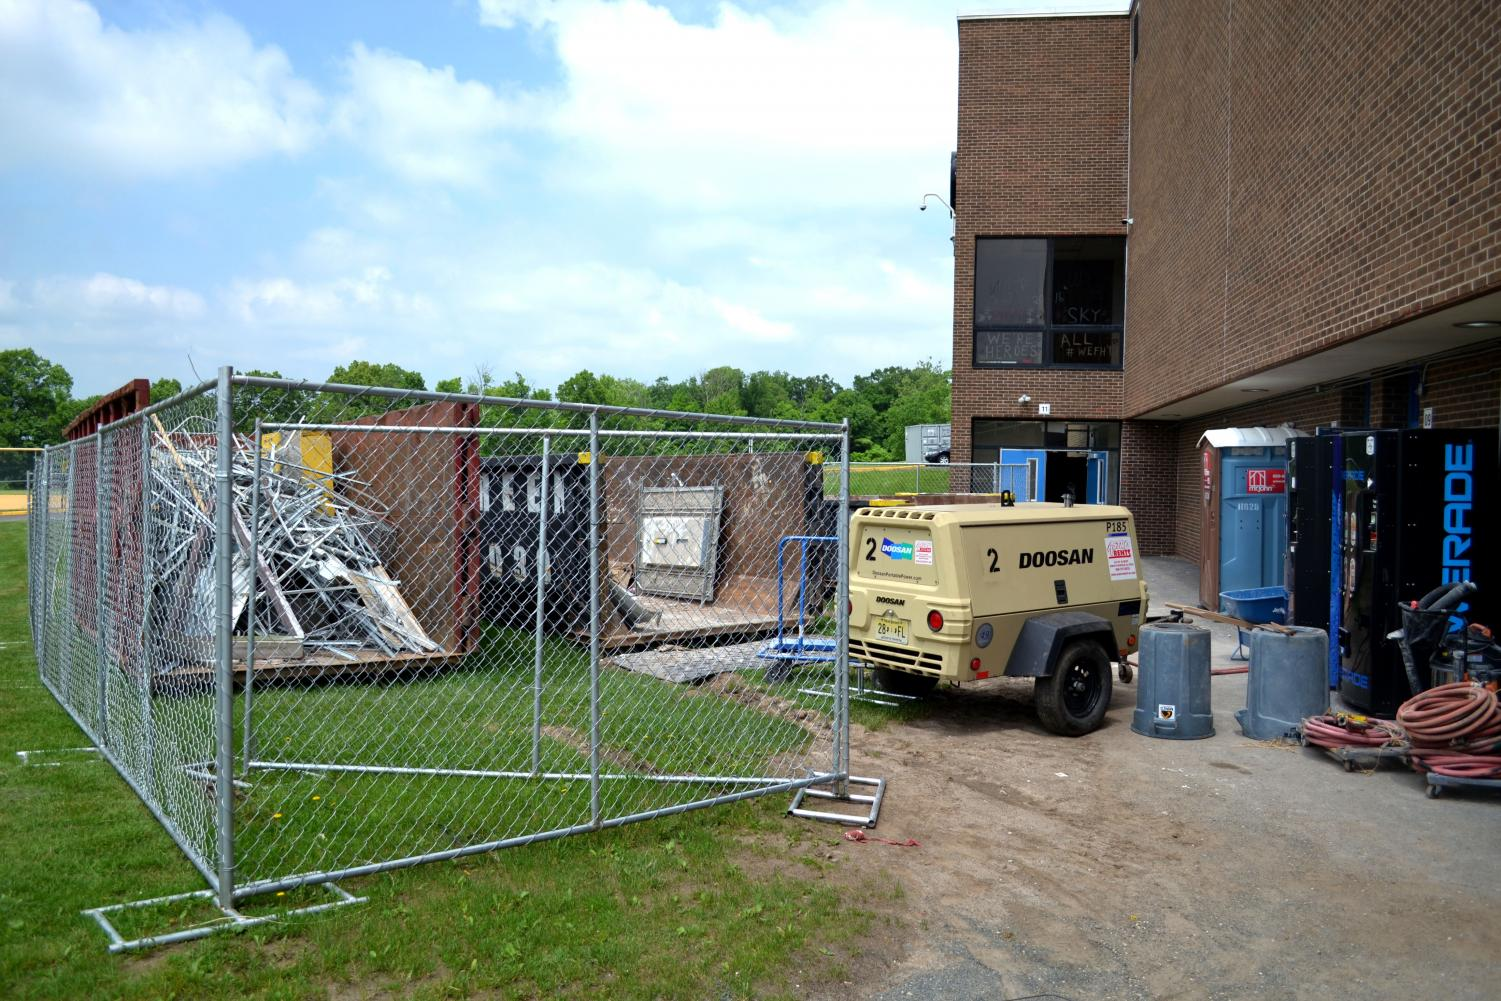 The locker rooms at the middle school, nearly 50 years after their construction, are in the process of being rebuilt from the bottom up.